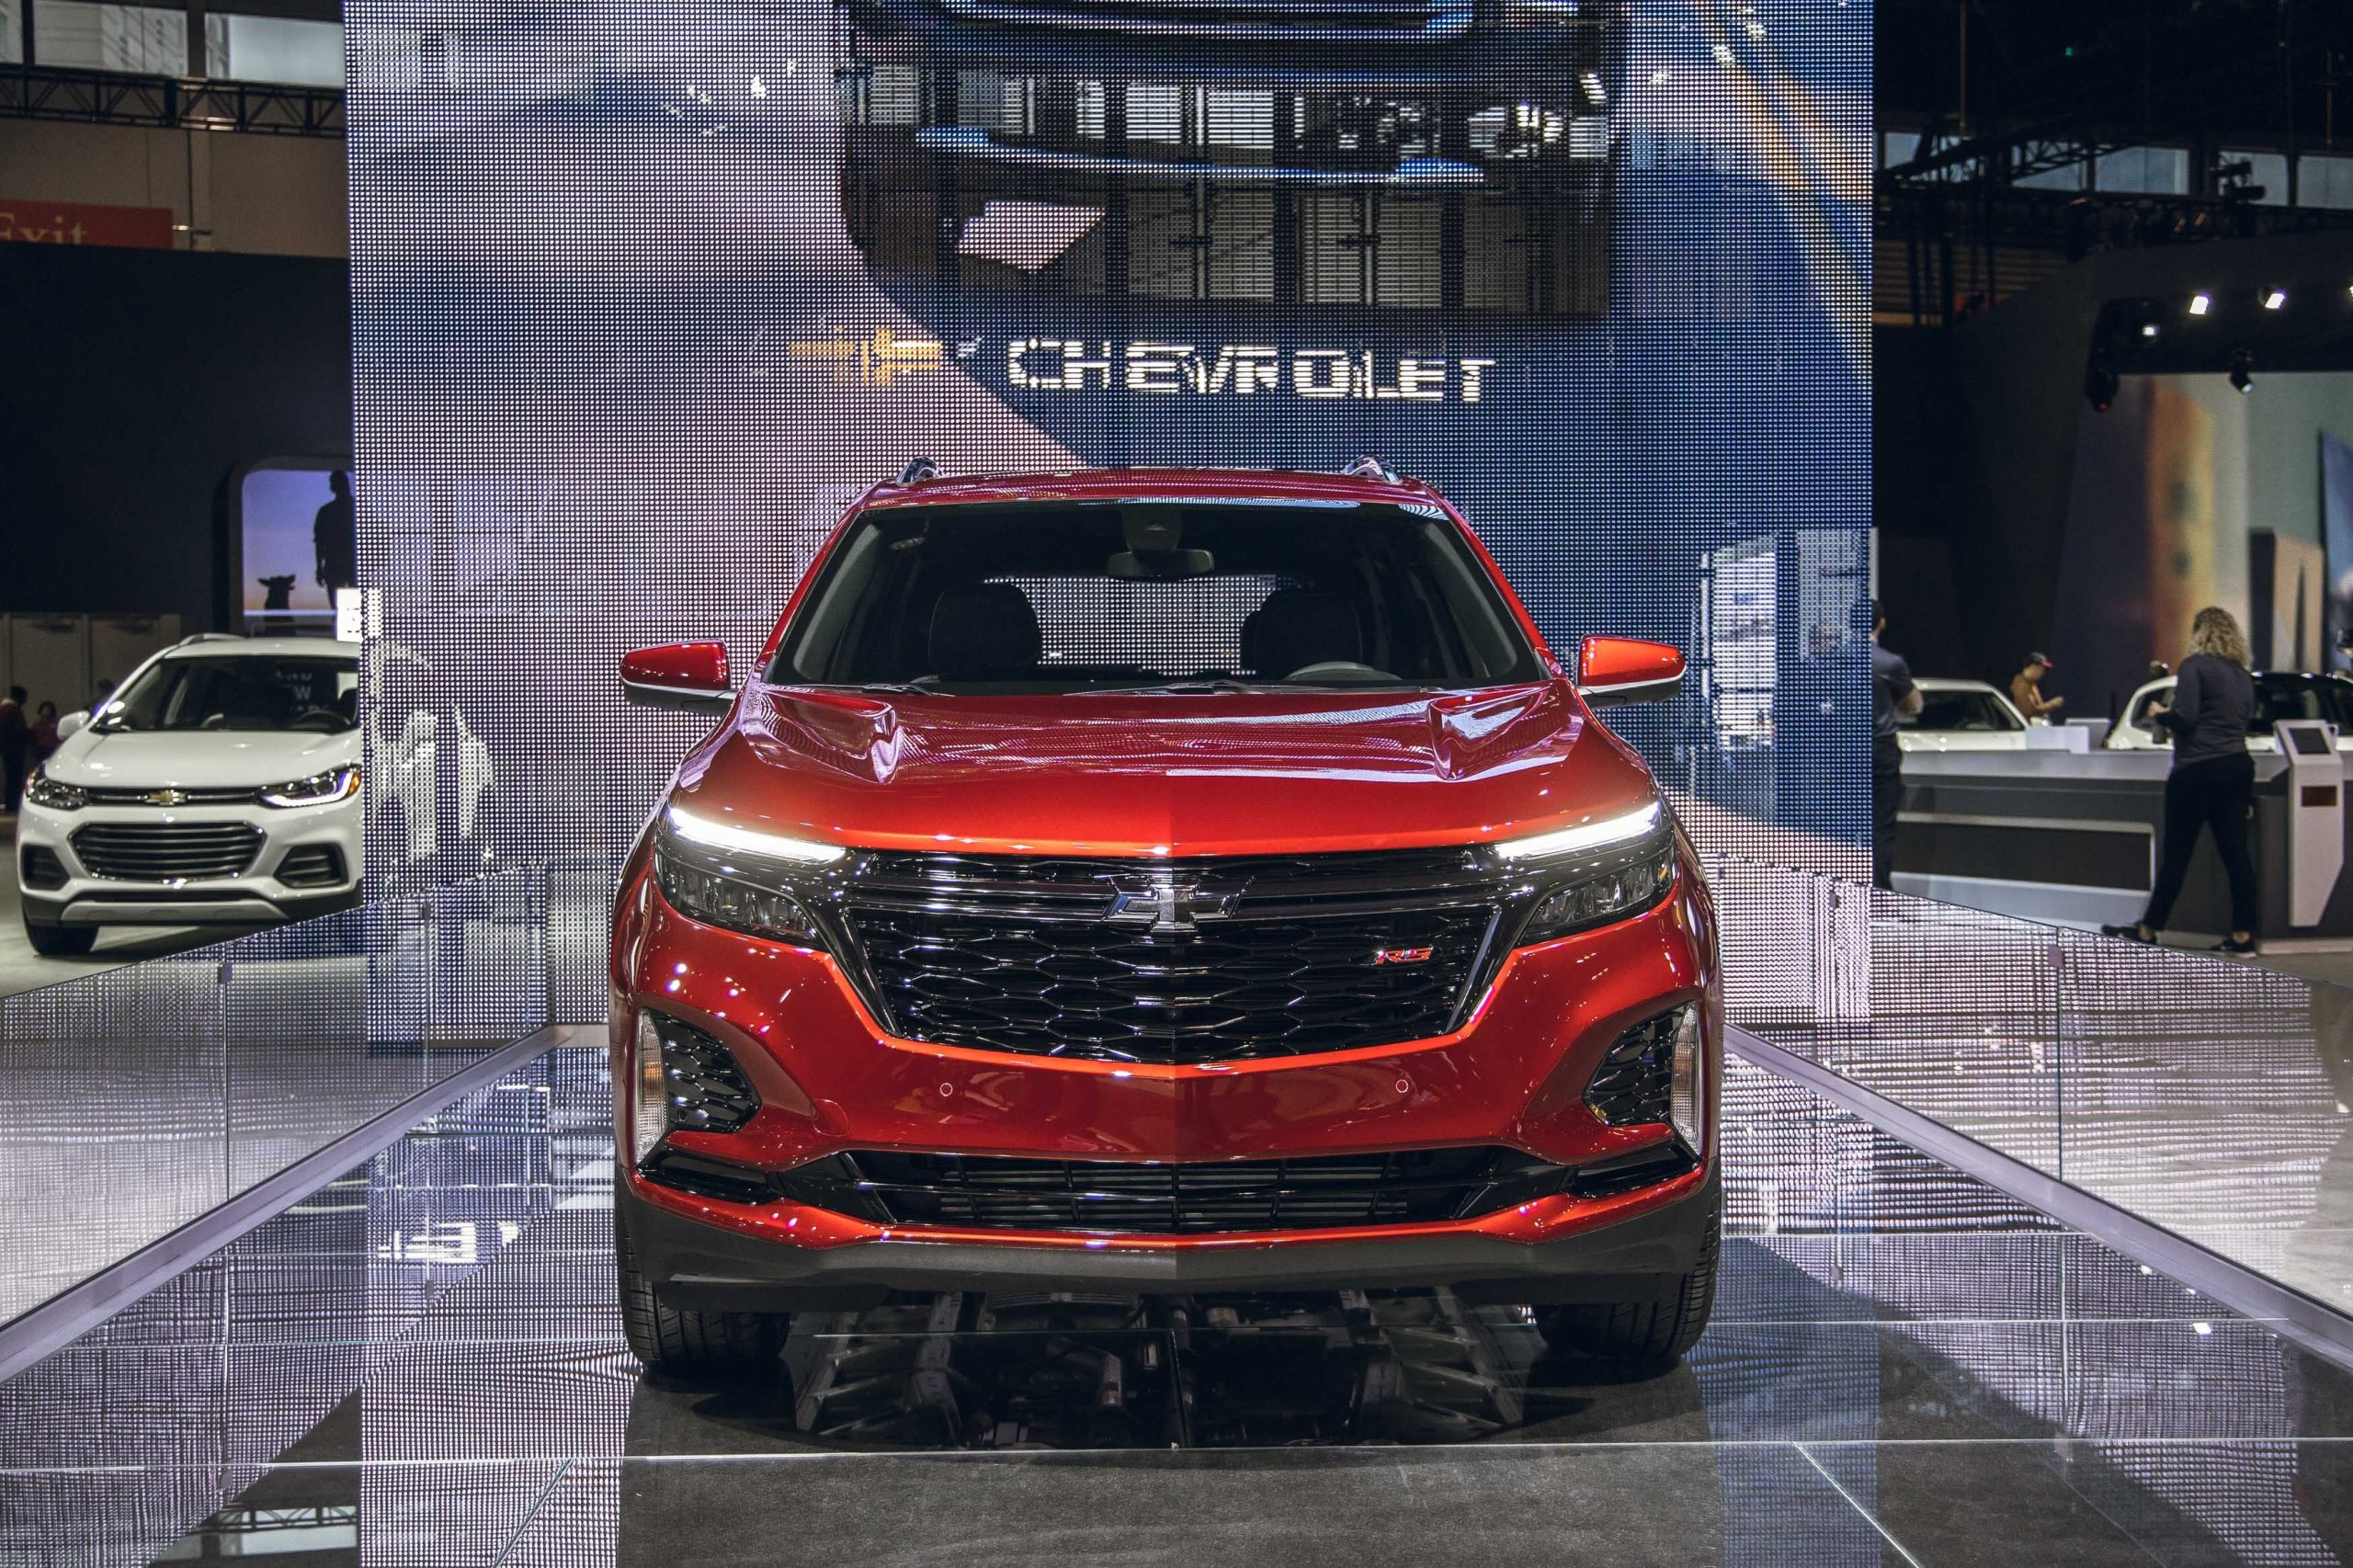 Chevy's Popular Equinox Gets Rs Trim, Updated Appearance For 2021 Chevy Equinox Premier Lease Deals, Test Drive, Fwd